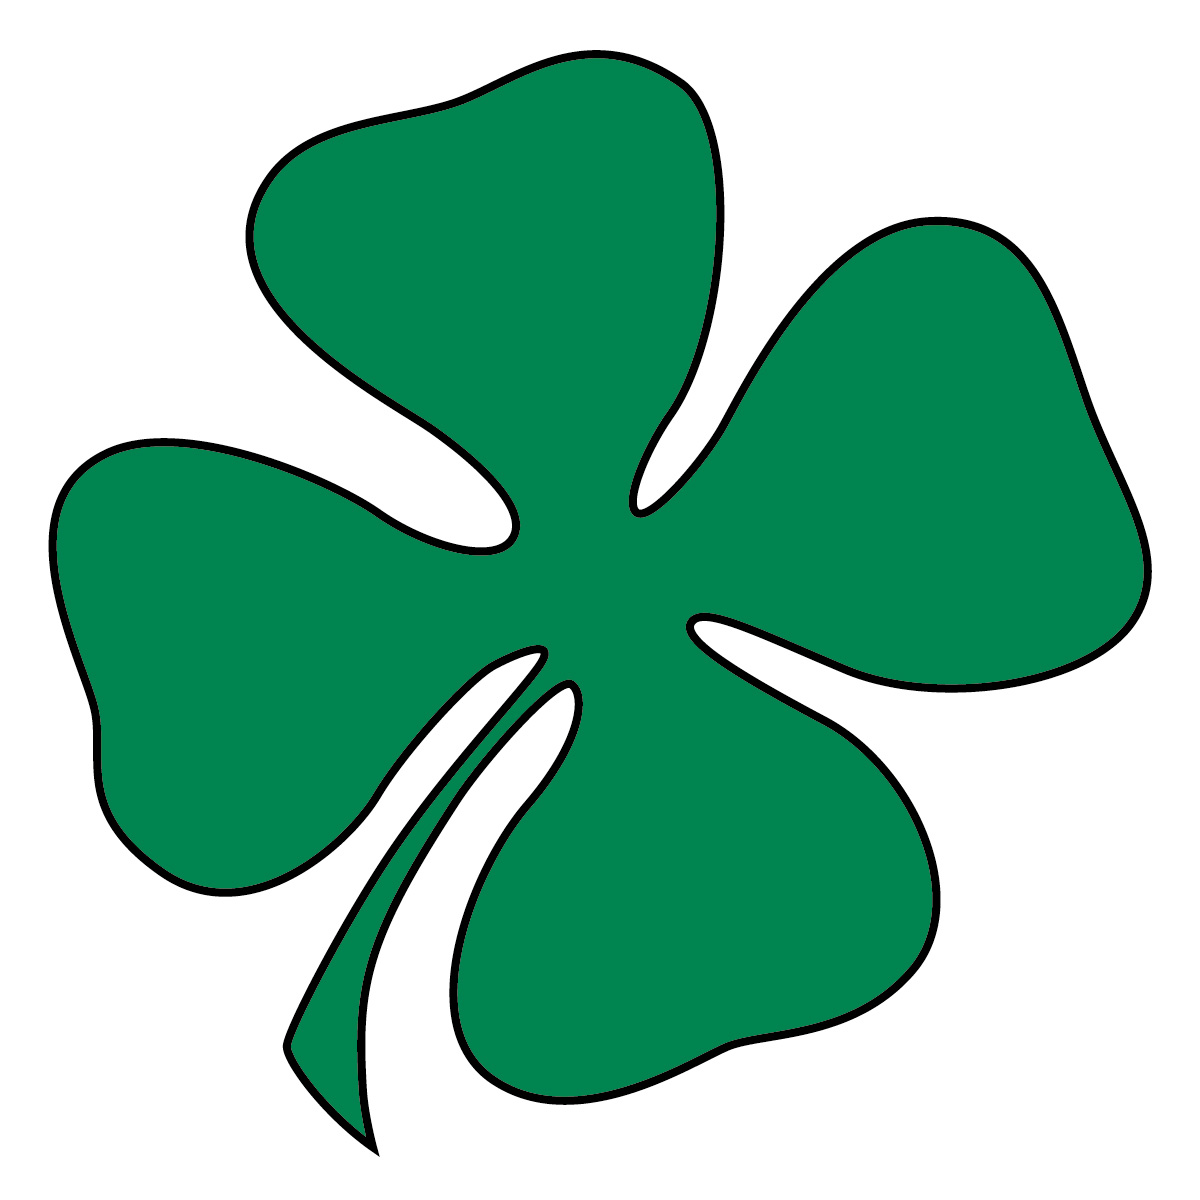 Shamrock clipart #4, Download drawings